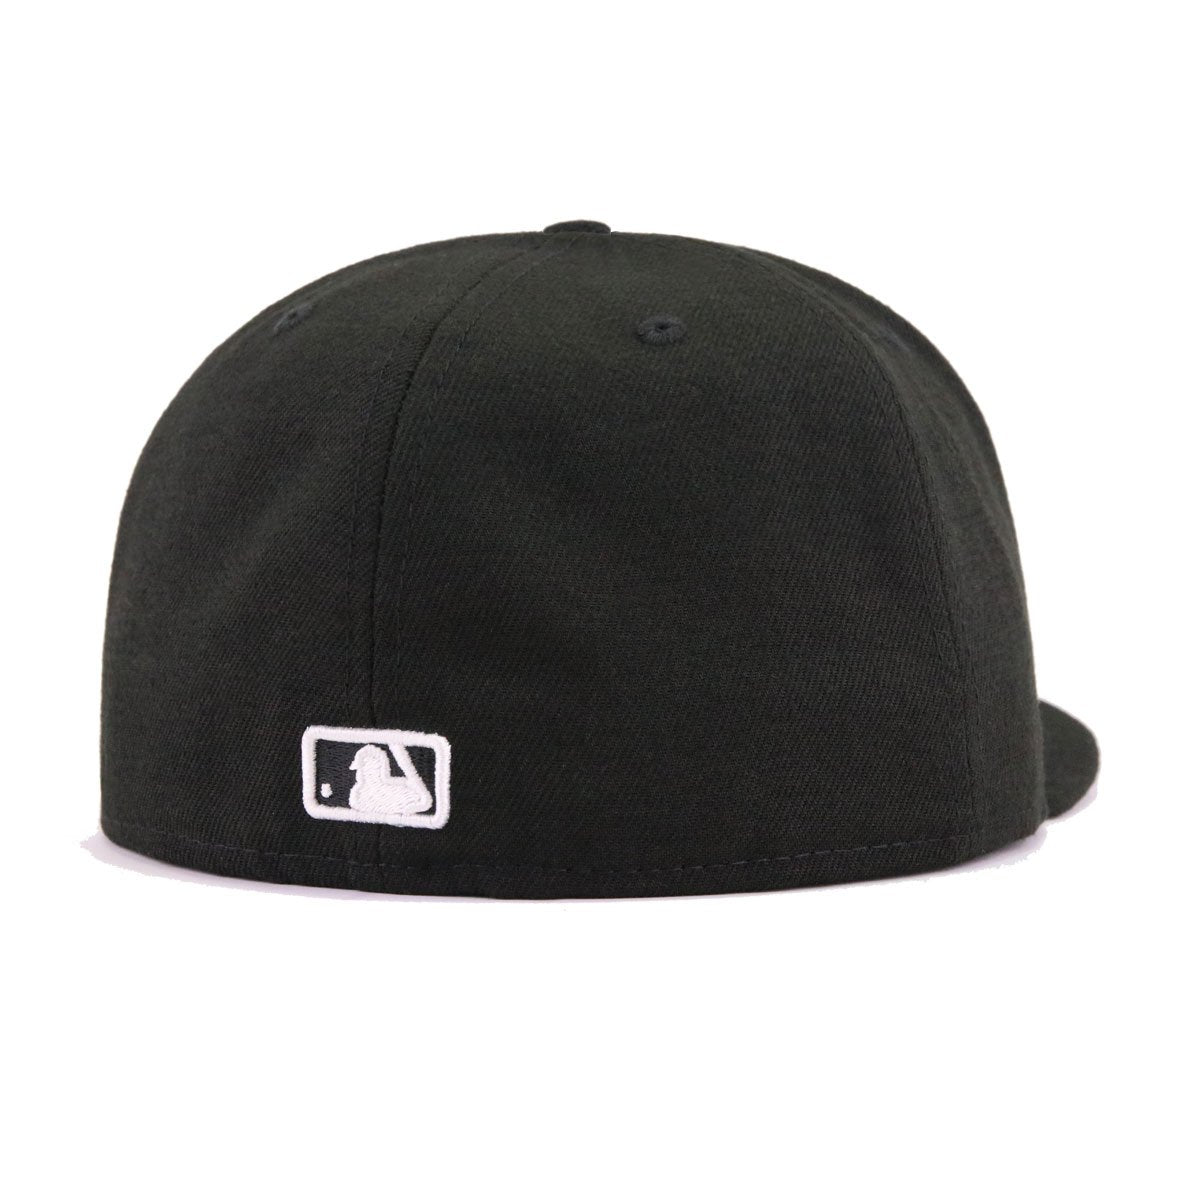 San Diego Padres Black New Era 59Fifty Fitted